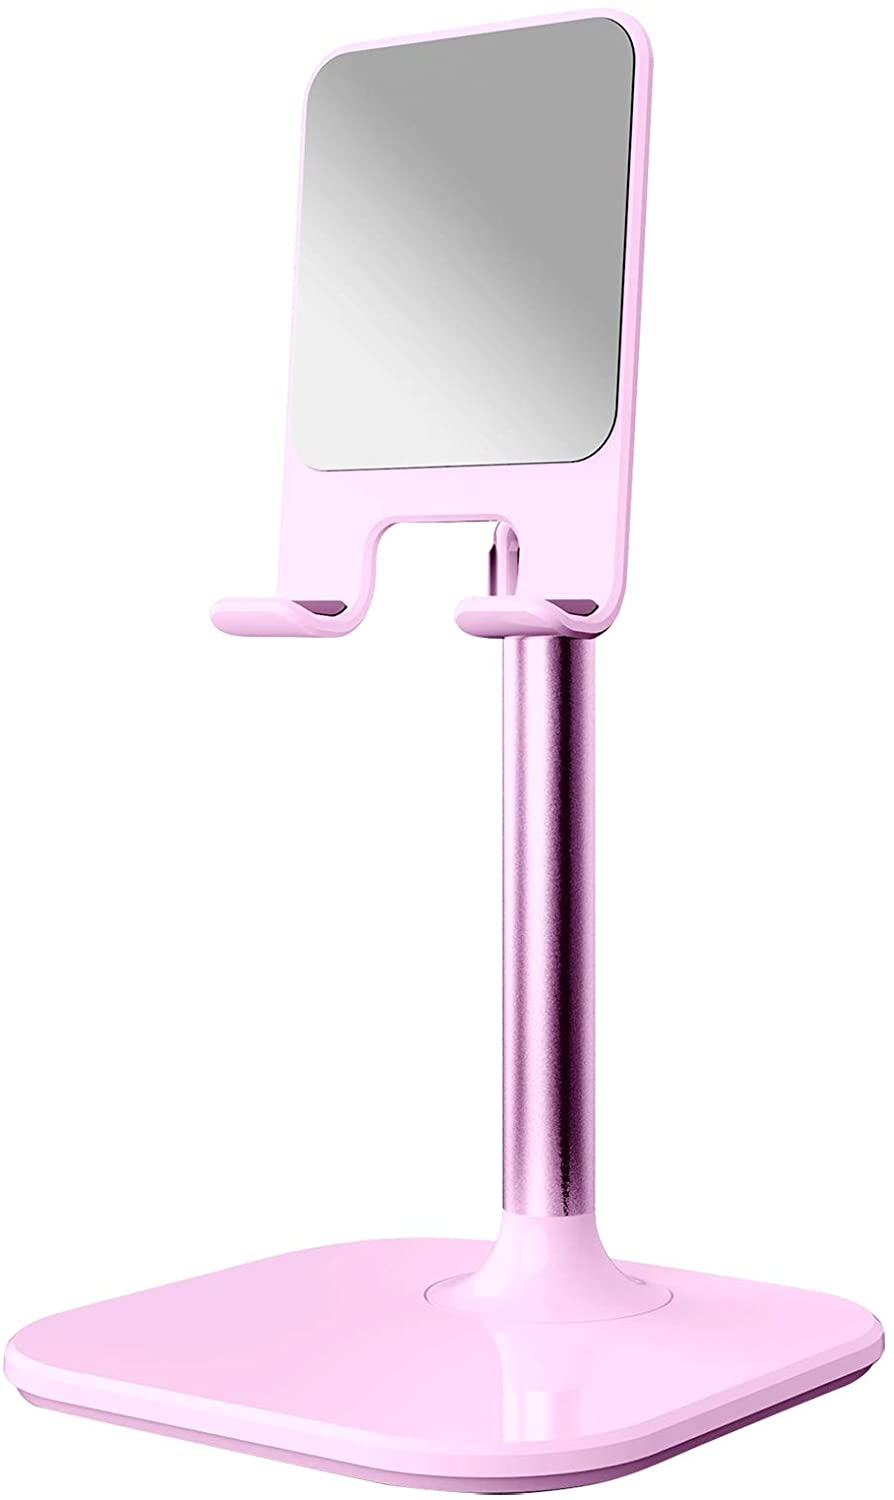 MOHALIKO Cell Phone Stand, Adjustable Cell Phone Stand, Anti-Slip Adjustable Retractable Aluminum Alloy Desktop Phone Tablet Holder Compatible Most of Smartphones Pink